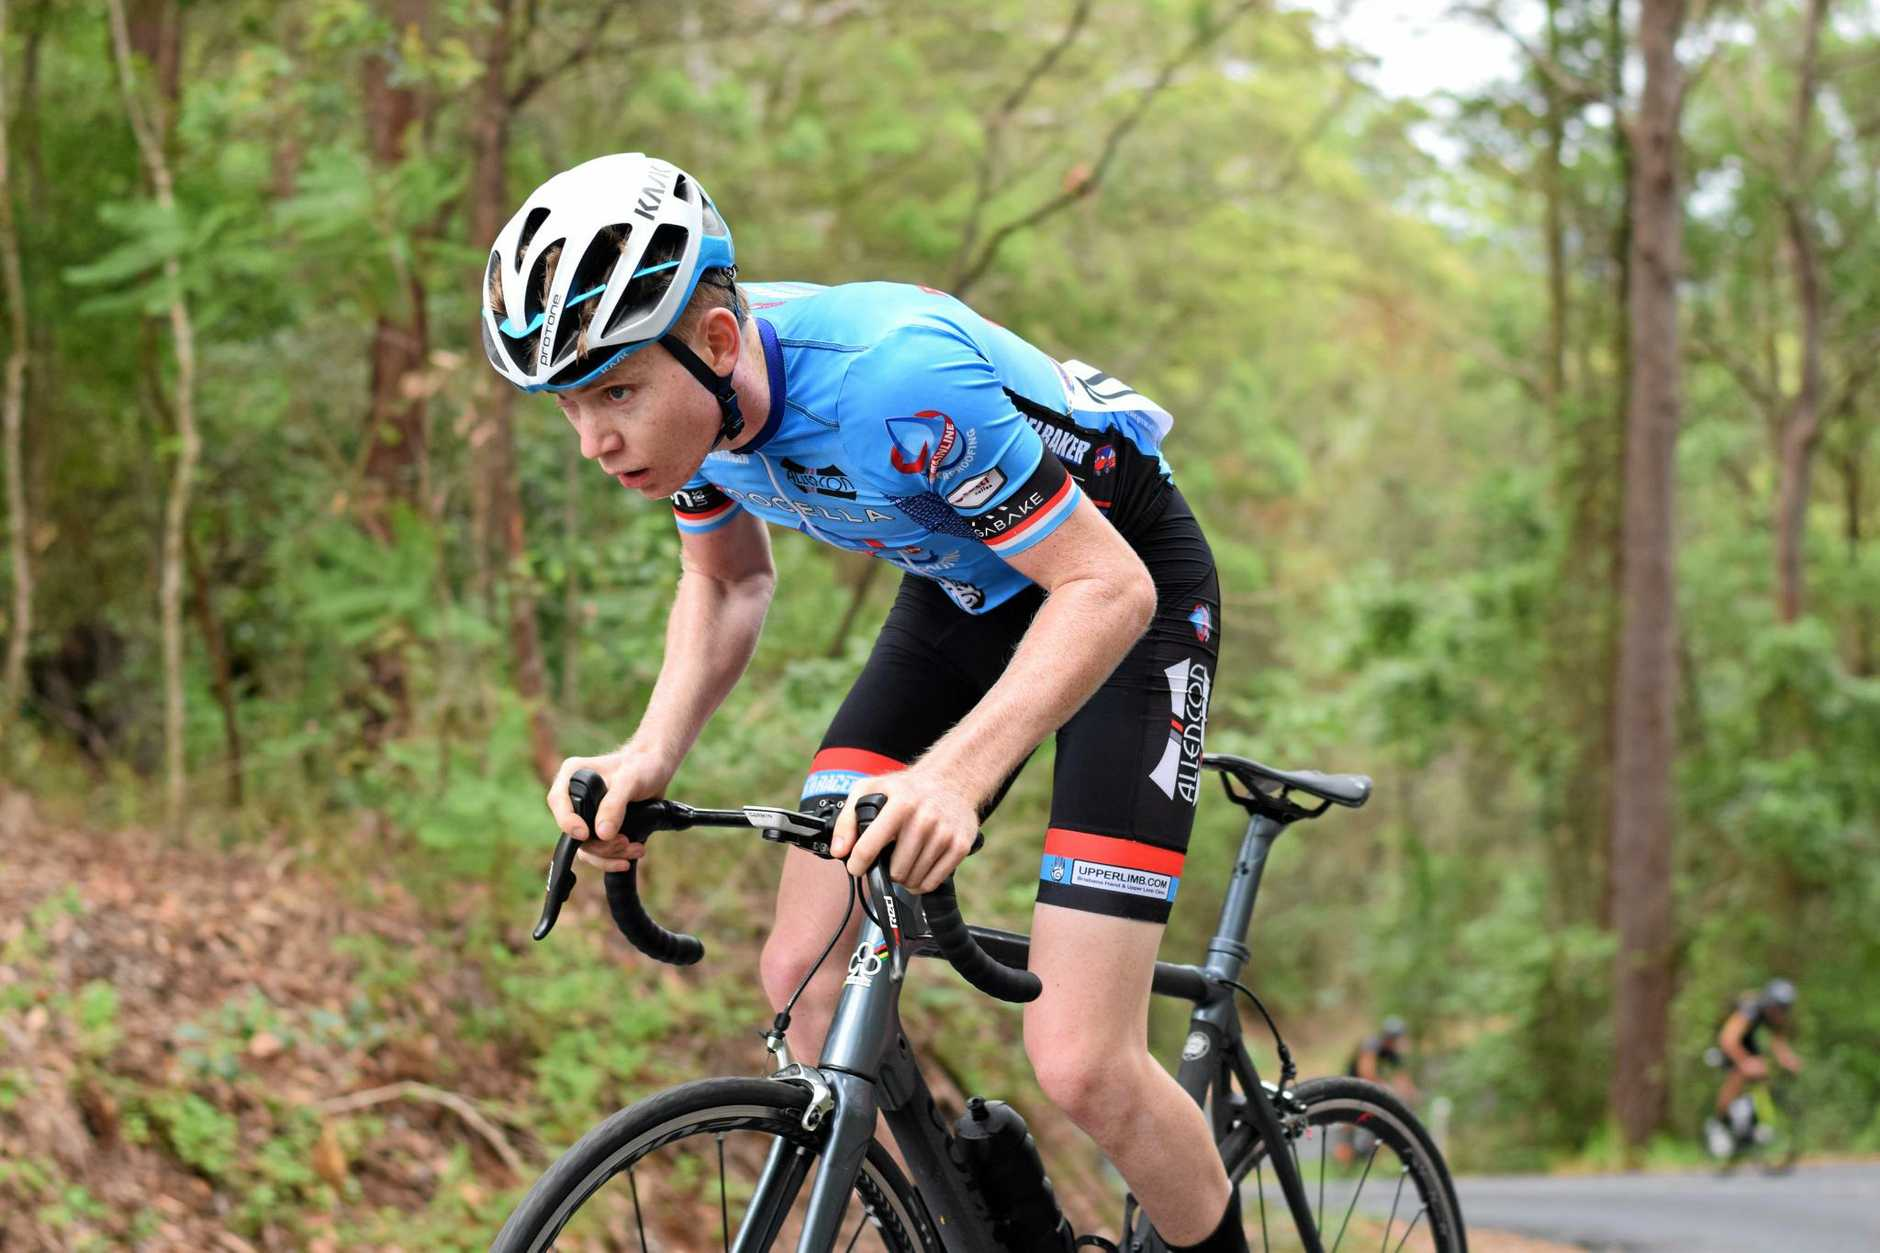 Elliot McKean during the recent Rosemount road race with traditional rim brakes.